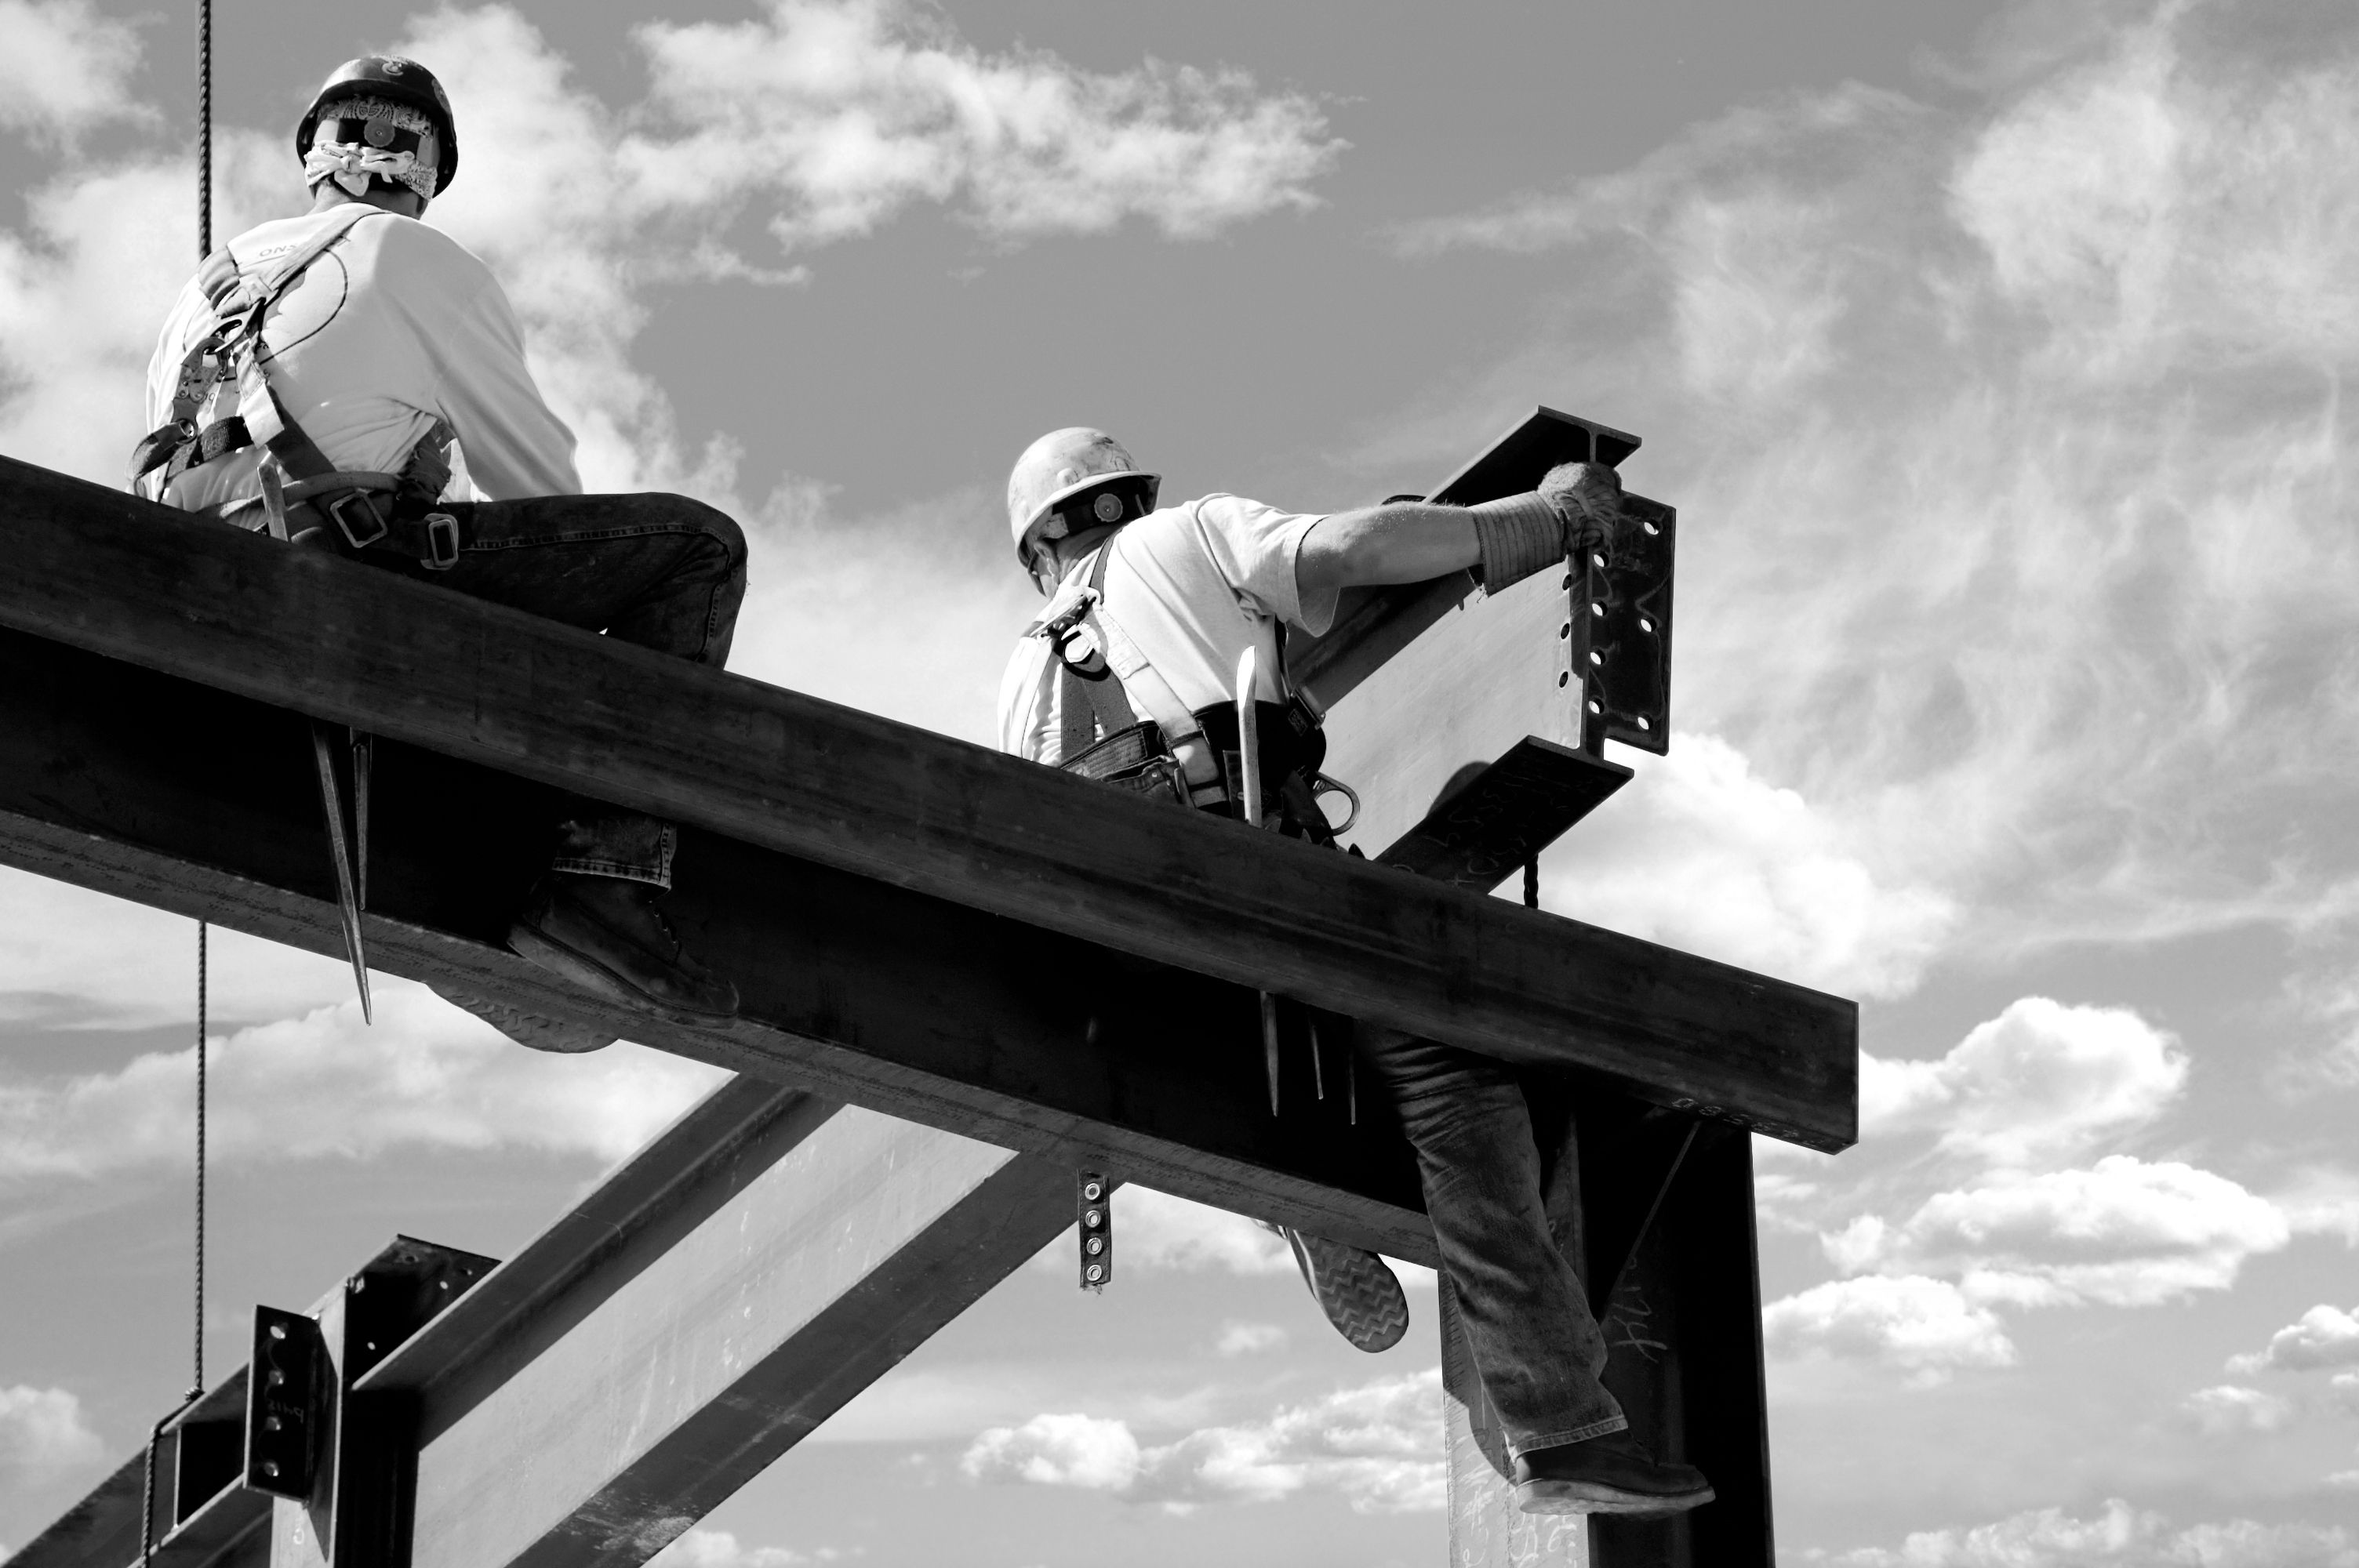 Construction workers at risk of falling from steel beams